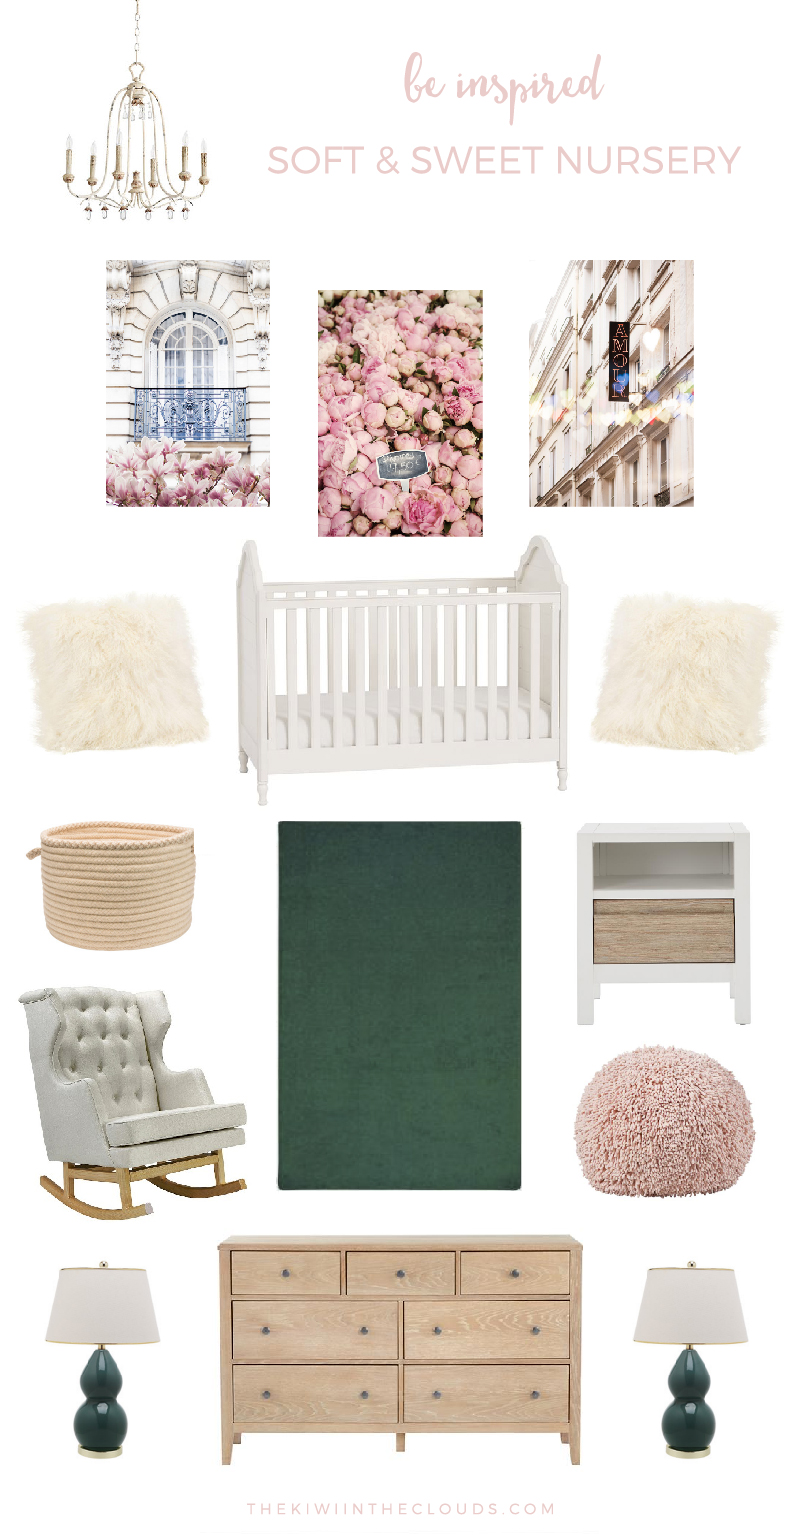 Soft And Sweet Nursery | Inspired by the serenity and innocence of a newborn, this little girl's nursery is calming and beautiful. Click through for the entire source list.